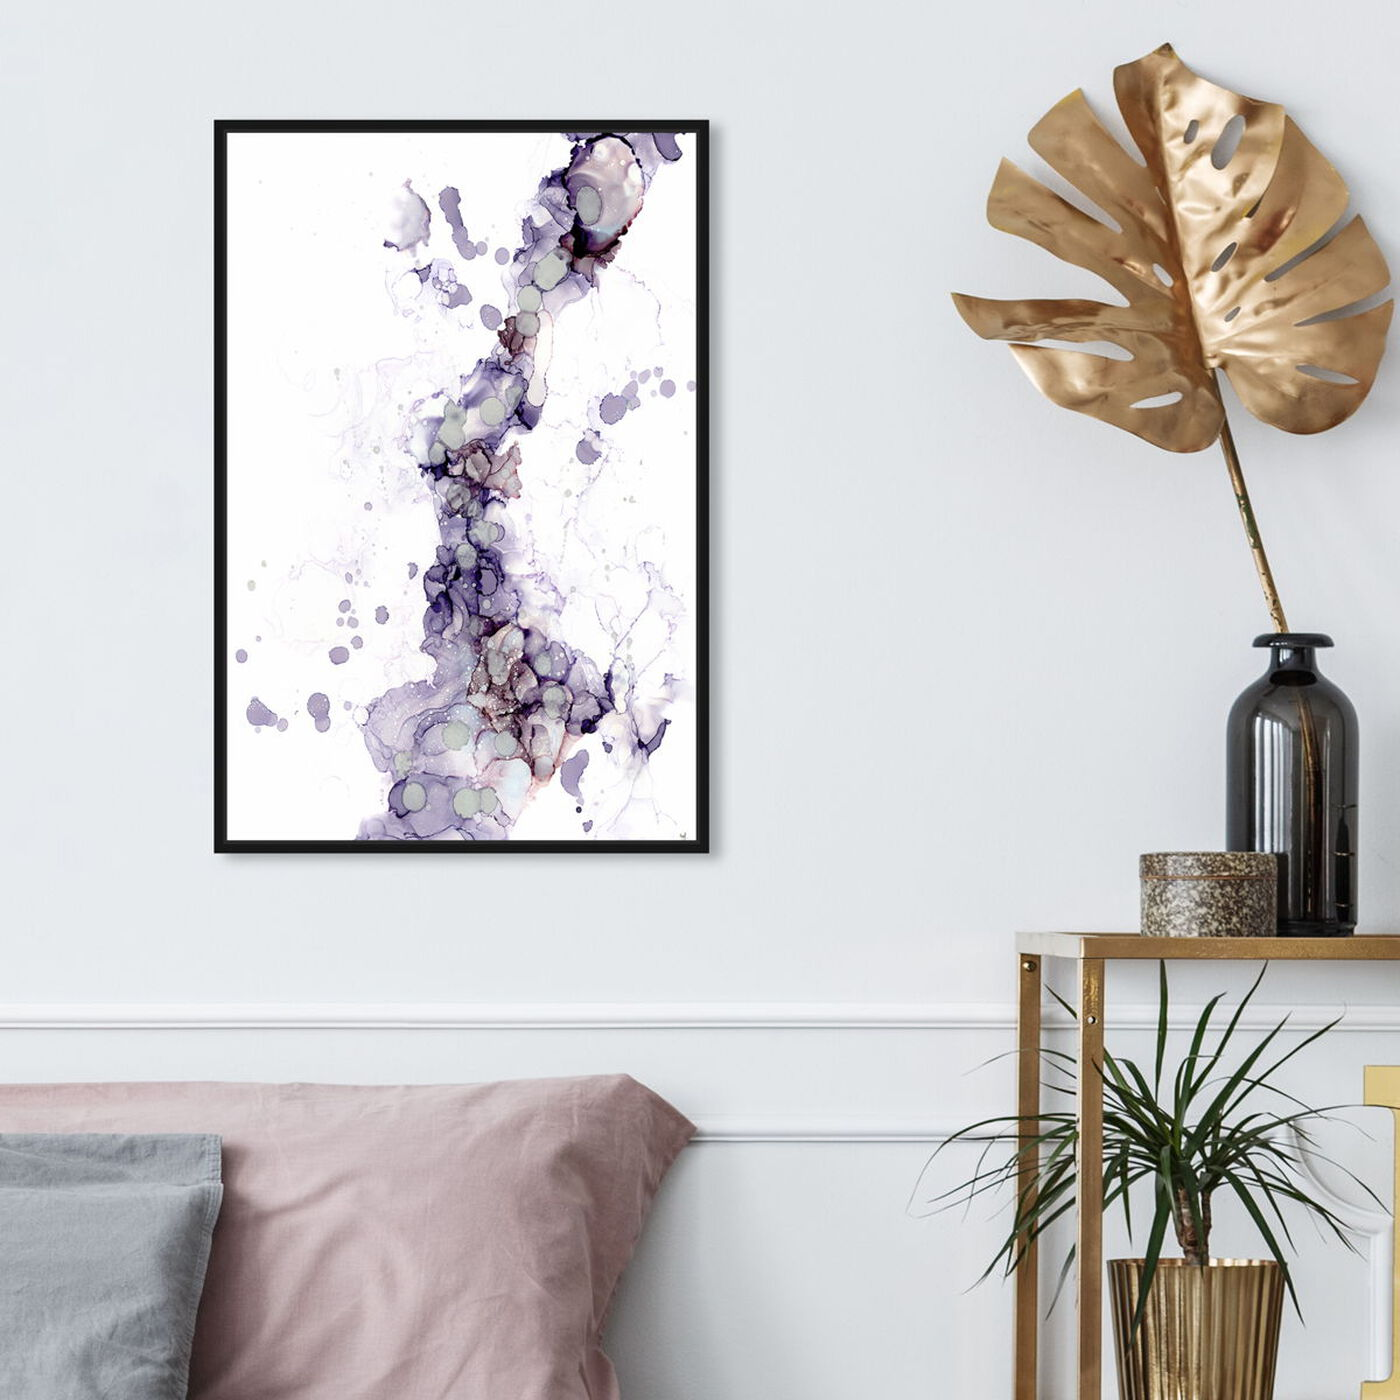 Hanging view of Jamie Blicher - Diana featuring abstract and watercolor art.